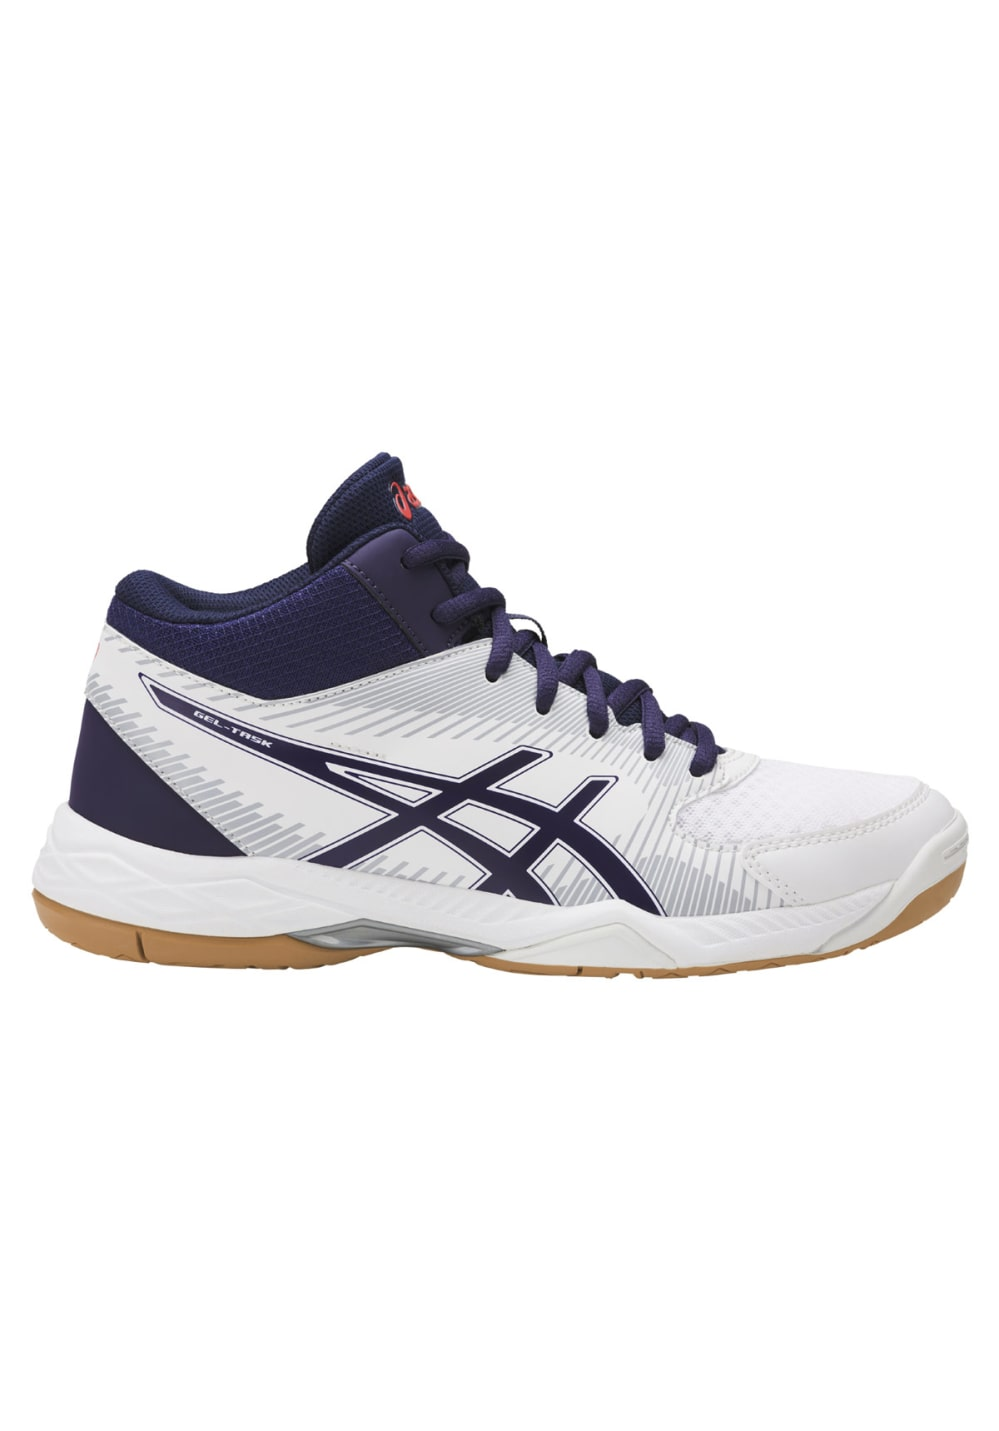 026246d8d195 ASICS GEL-Task MT - Volleyball shoes for Women - White | 21RUN